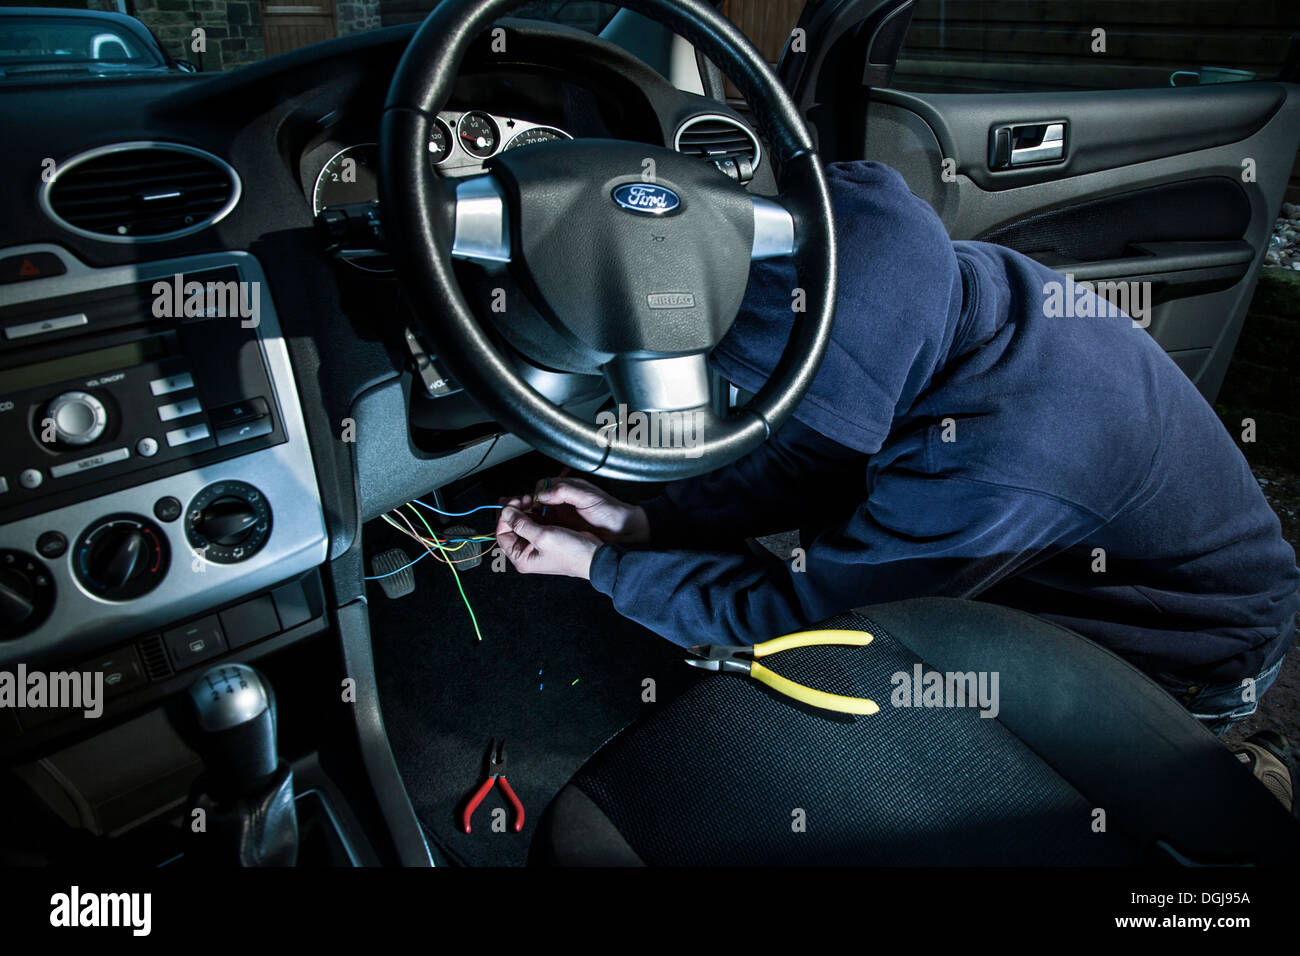 A man wearing a hoody hot wiring a car. - Stock Image